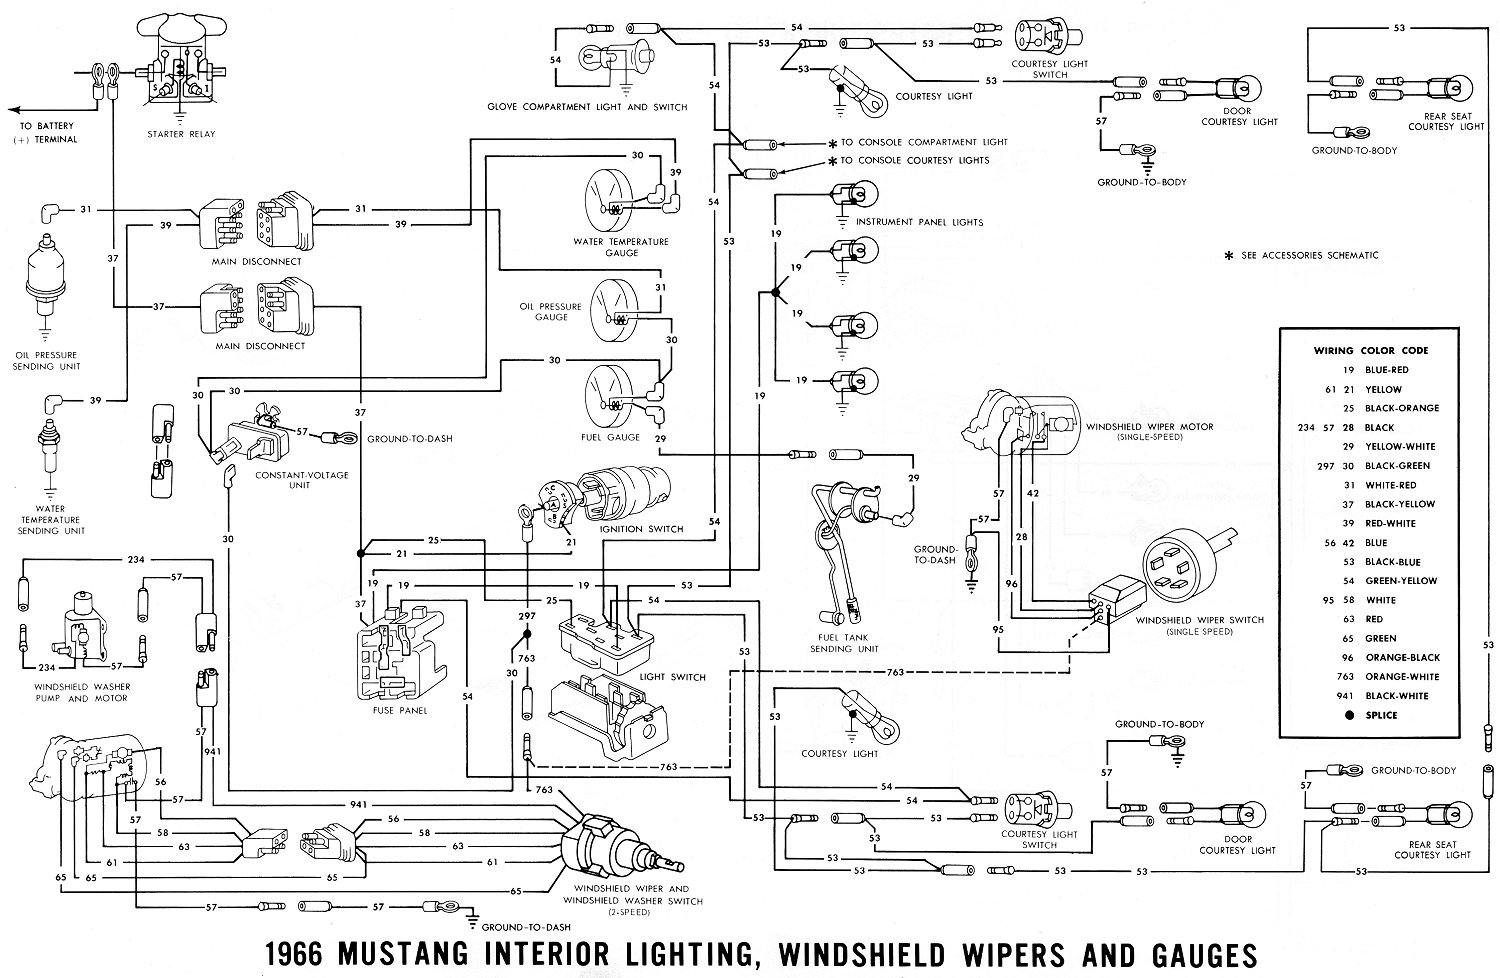 66inter1 1966 mustang wiring diagrams average joe restoration mustang wiring harness diagram at crackthecode.co